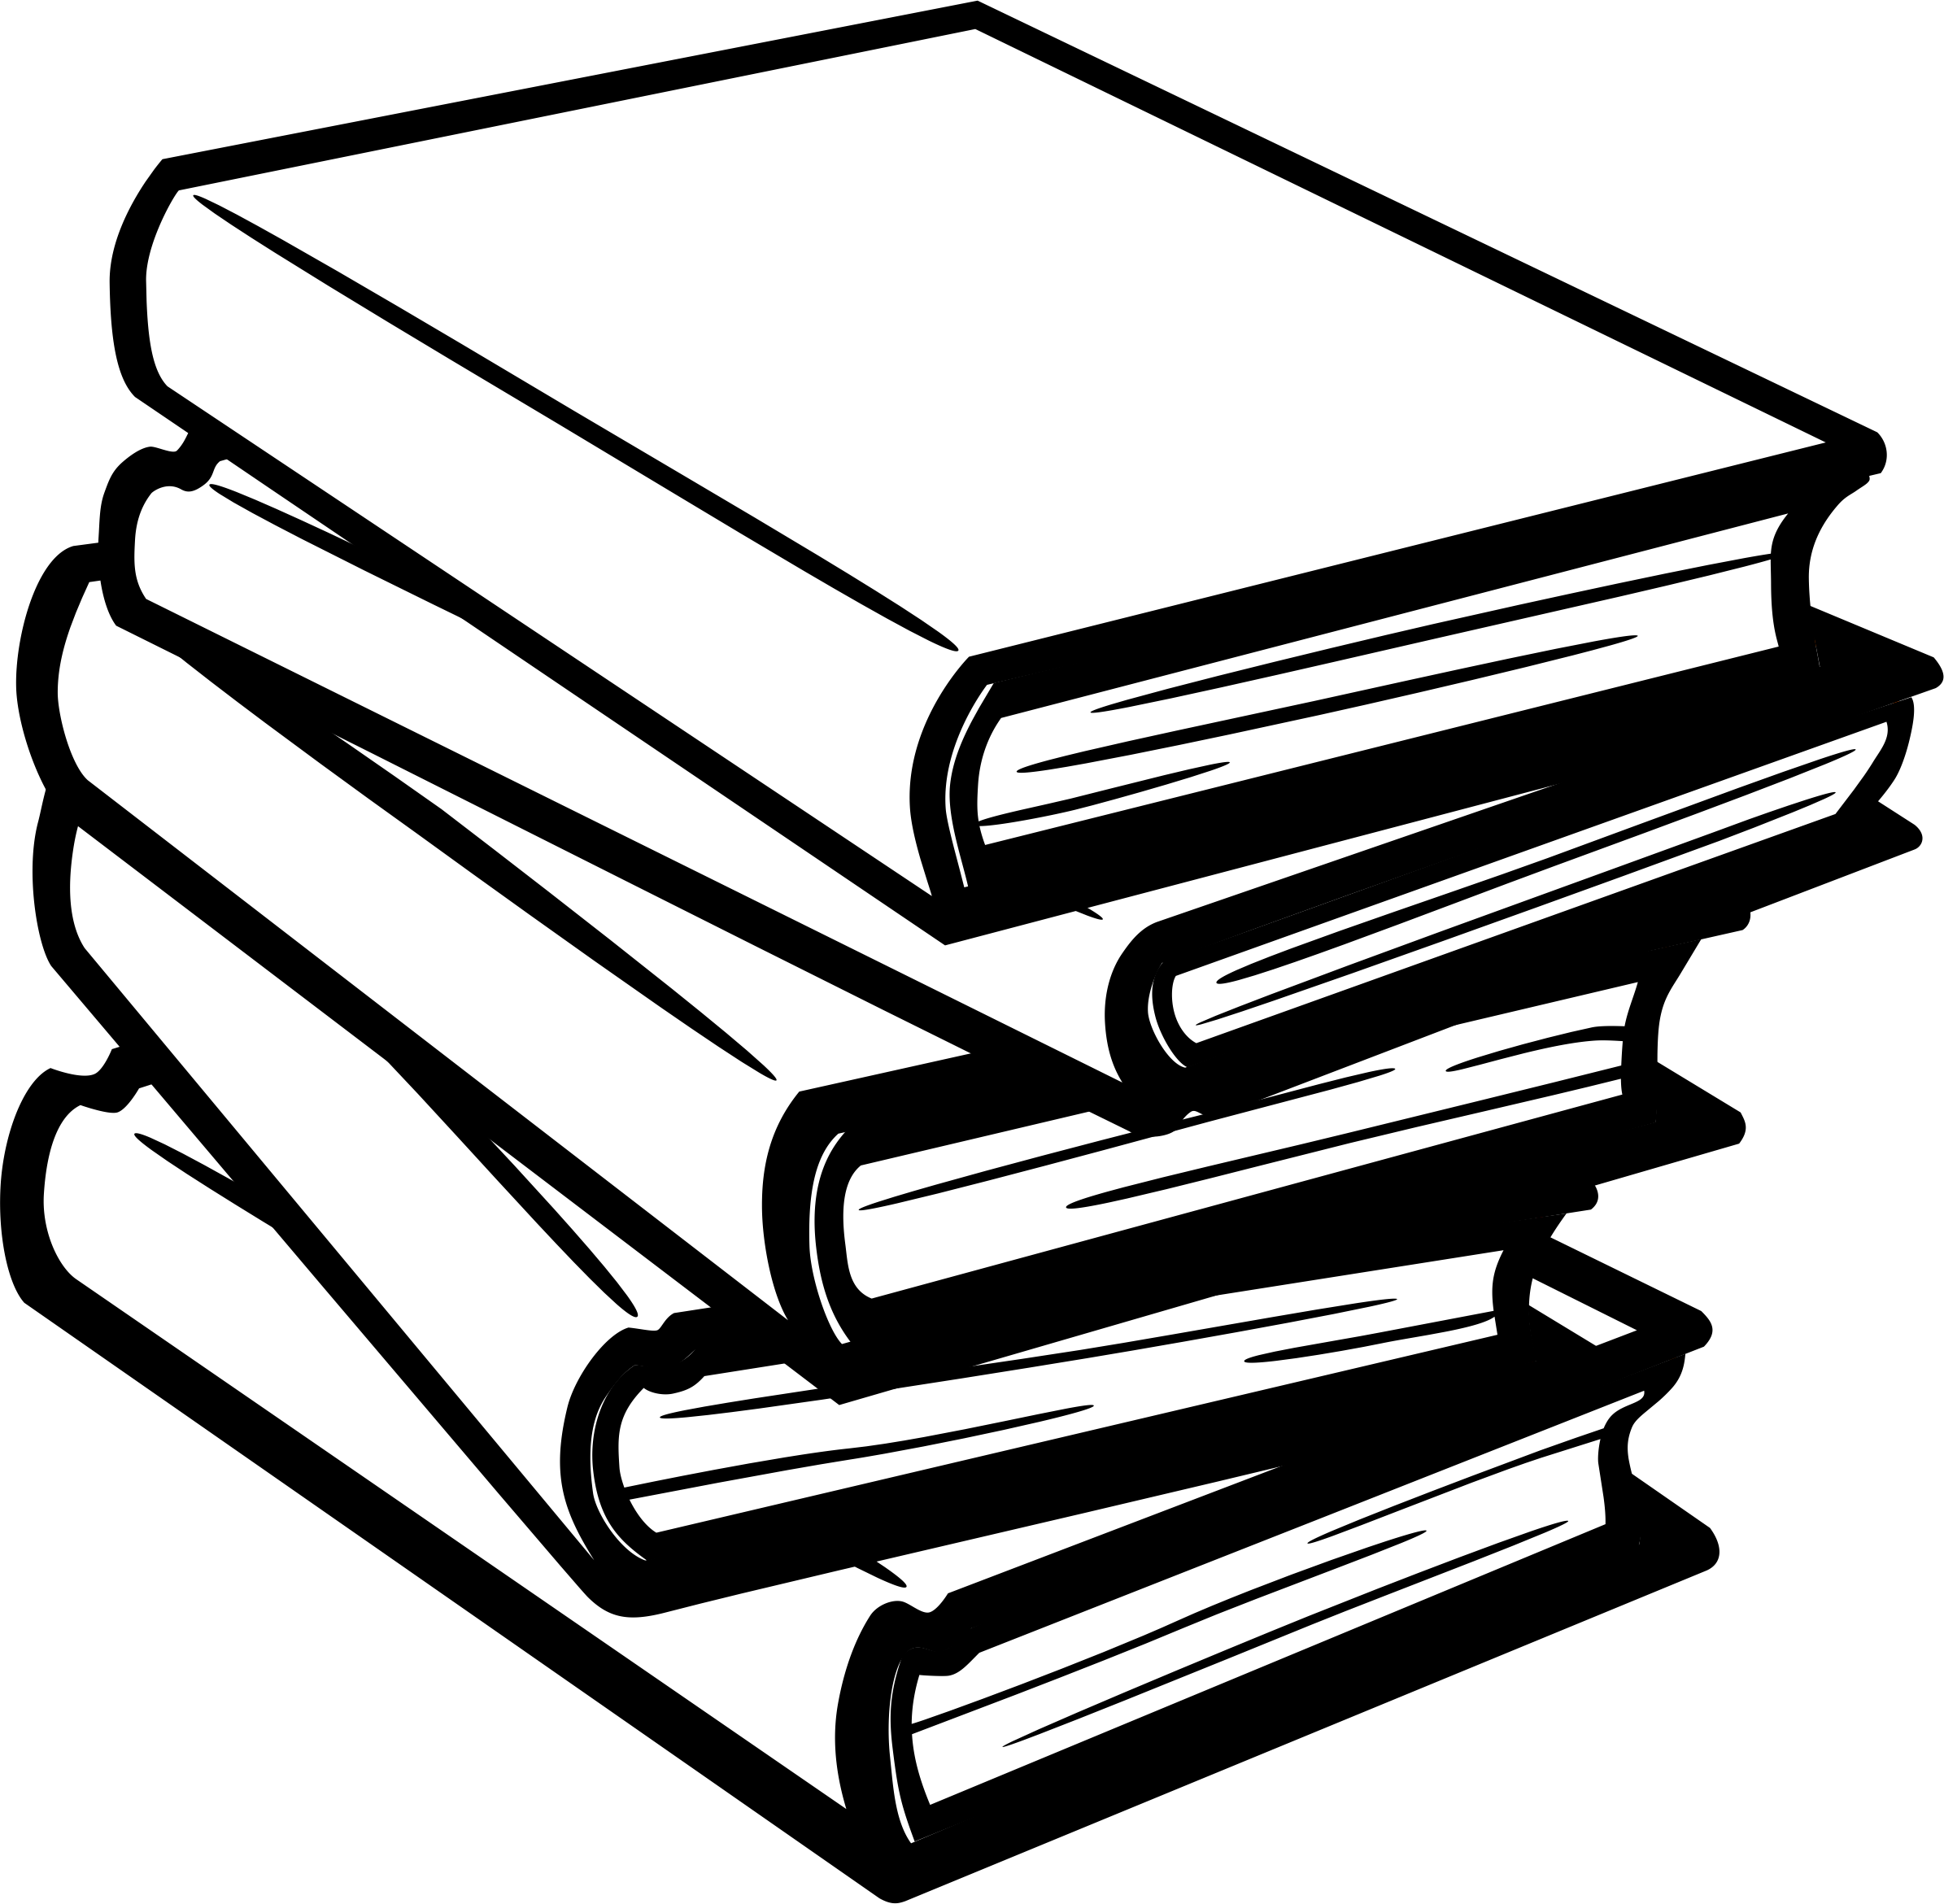 60 Books To Read